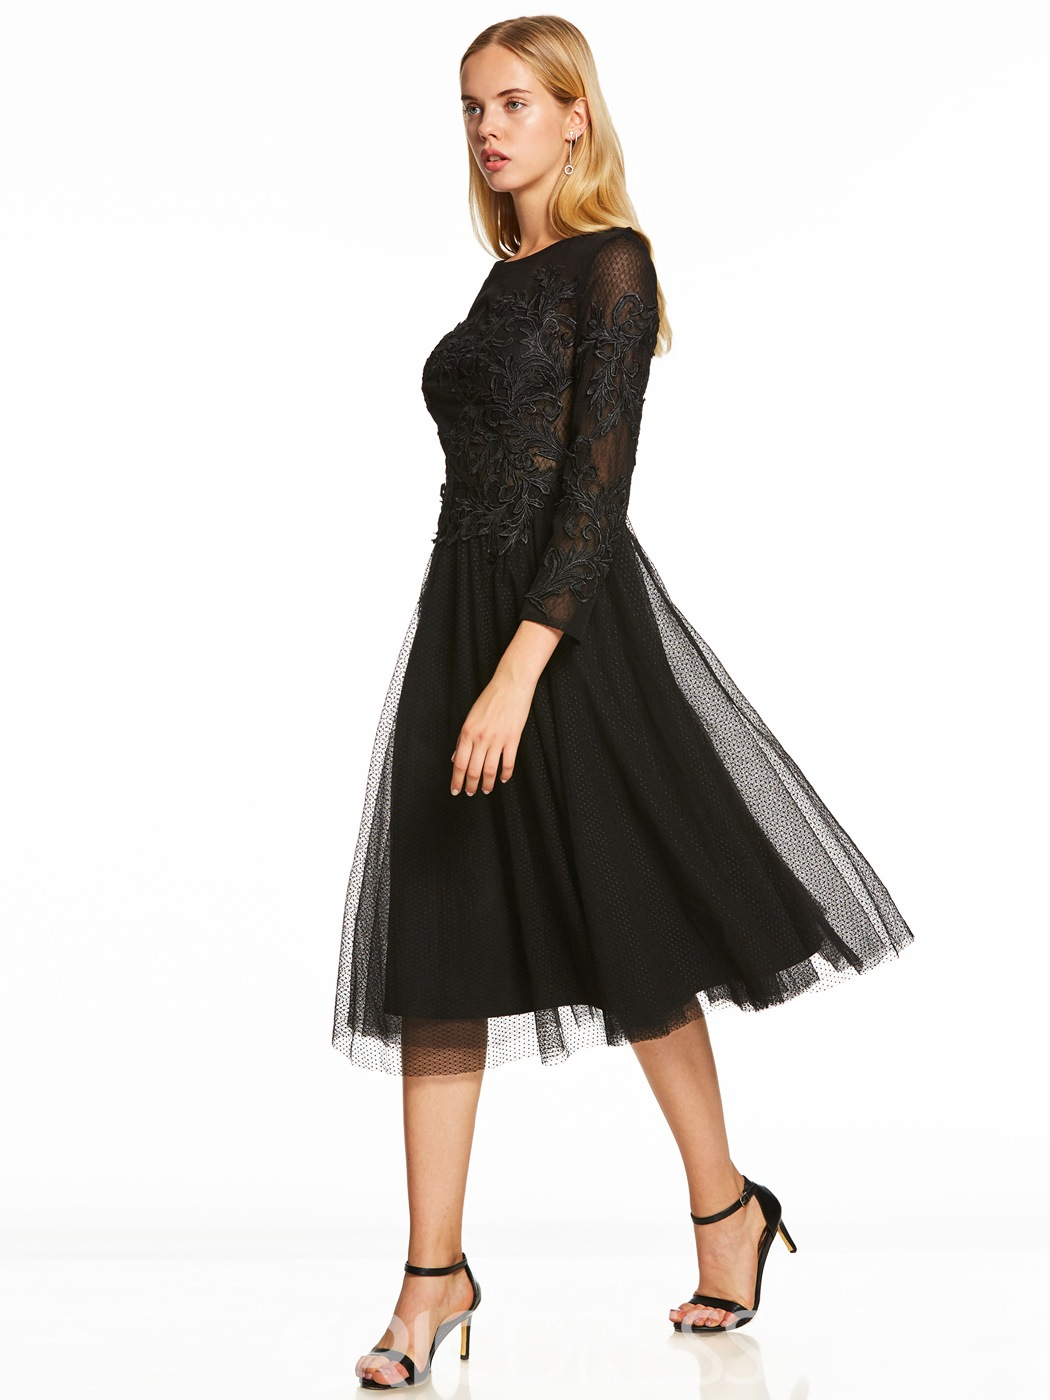 Ericdress Scoop Neck Long Sleeves A Line Cocktail Dress 13085586 ...